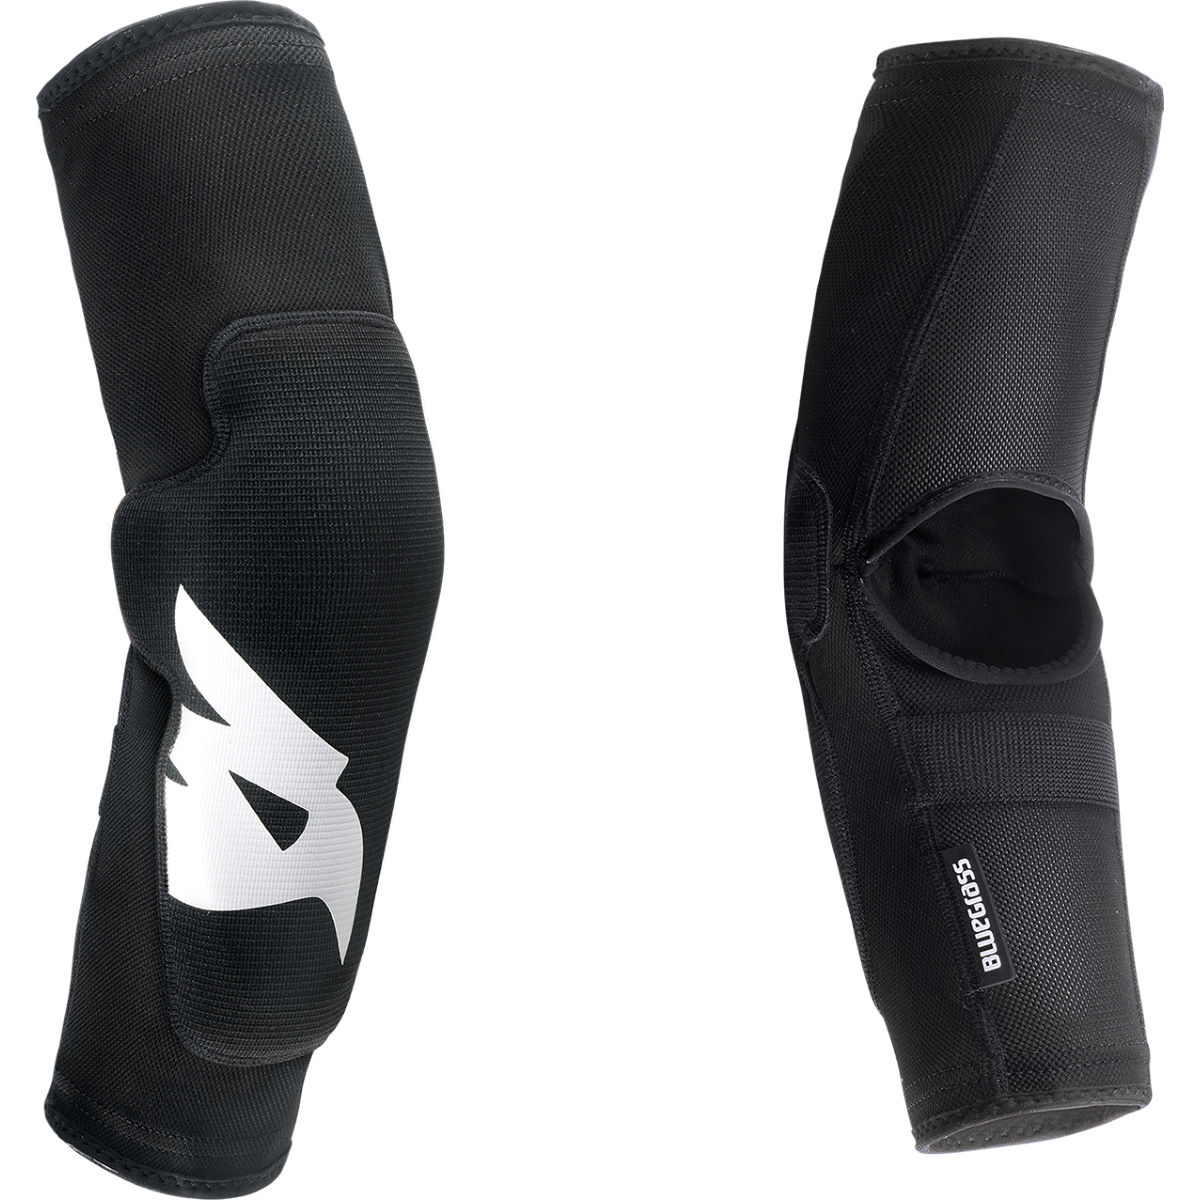 Bluegrass Skinny Elbow Guards - Coderas